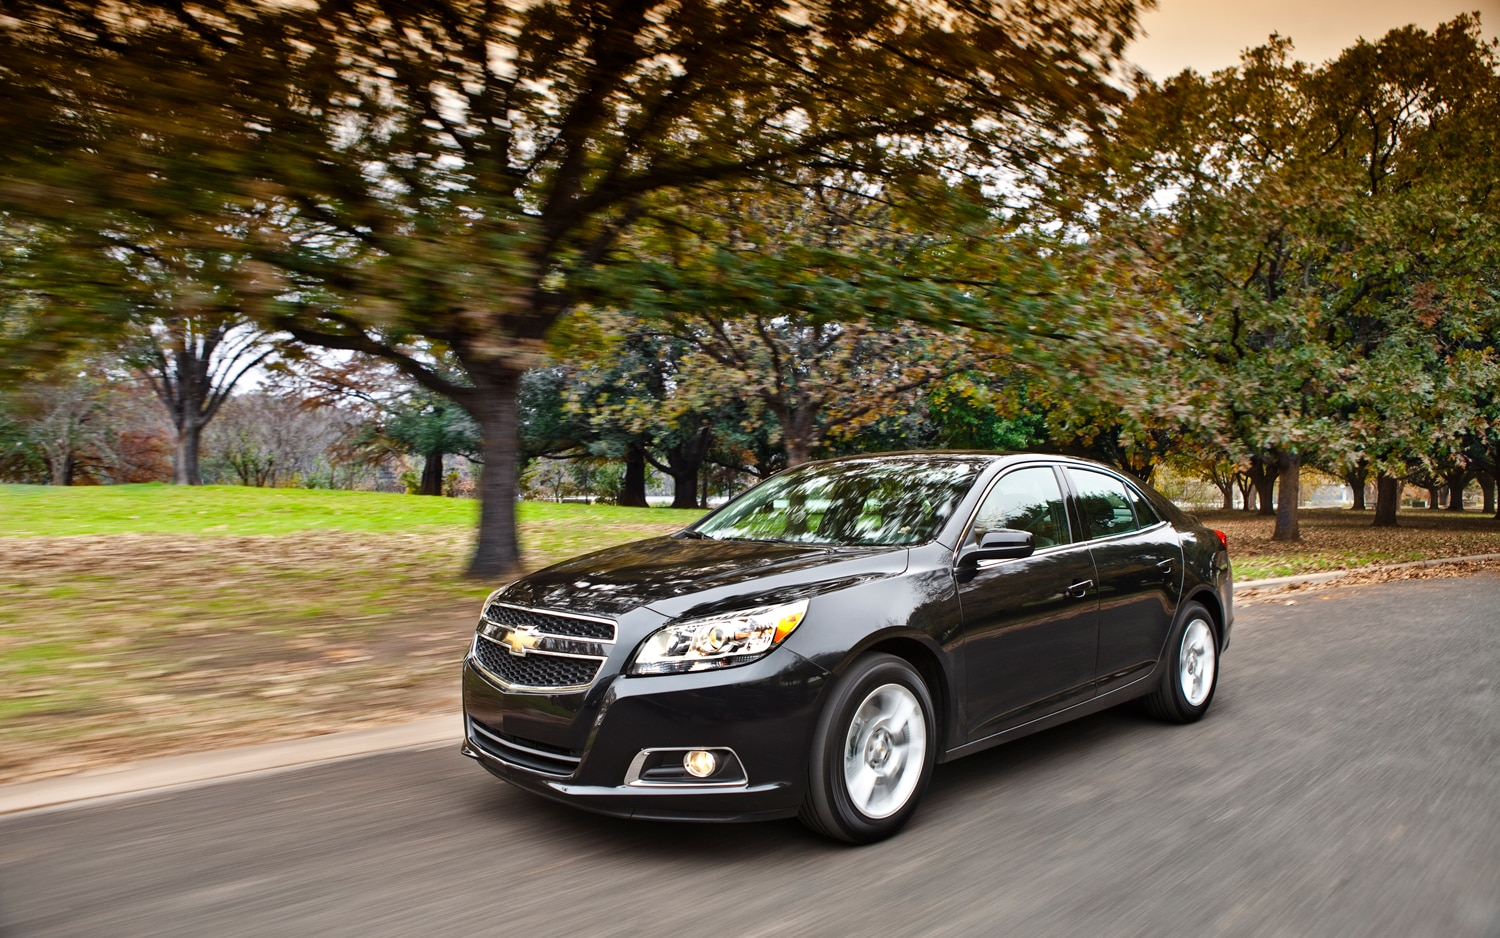 Malibu 2013 chevrolet malibu vin : First Drive: 2013 Chevrolet Malibu Eco - Automobile Magazine